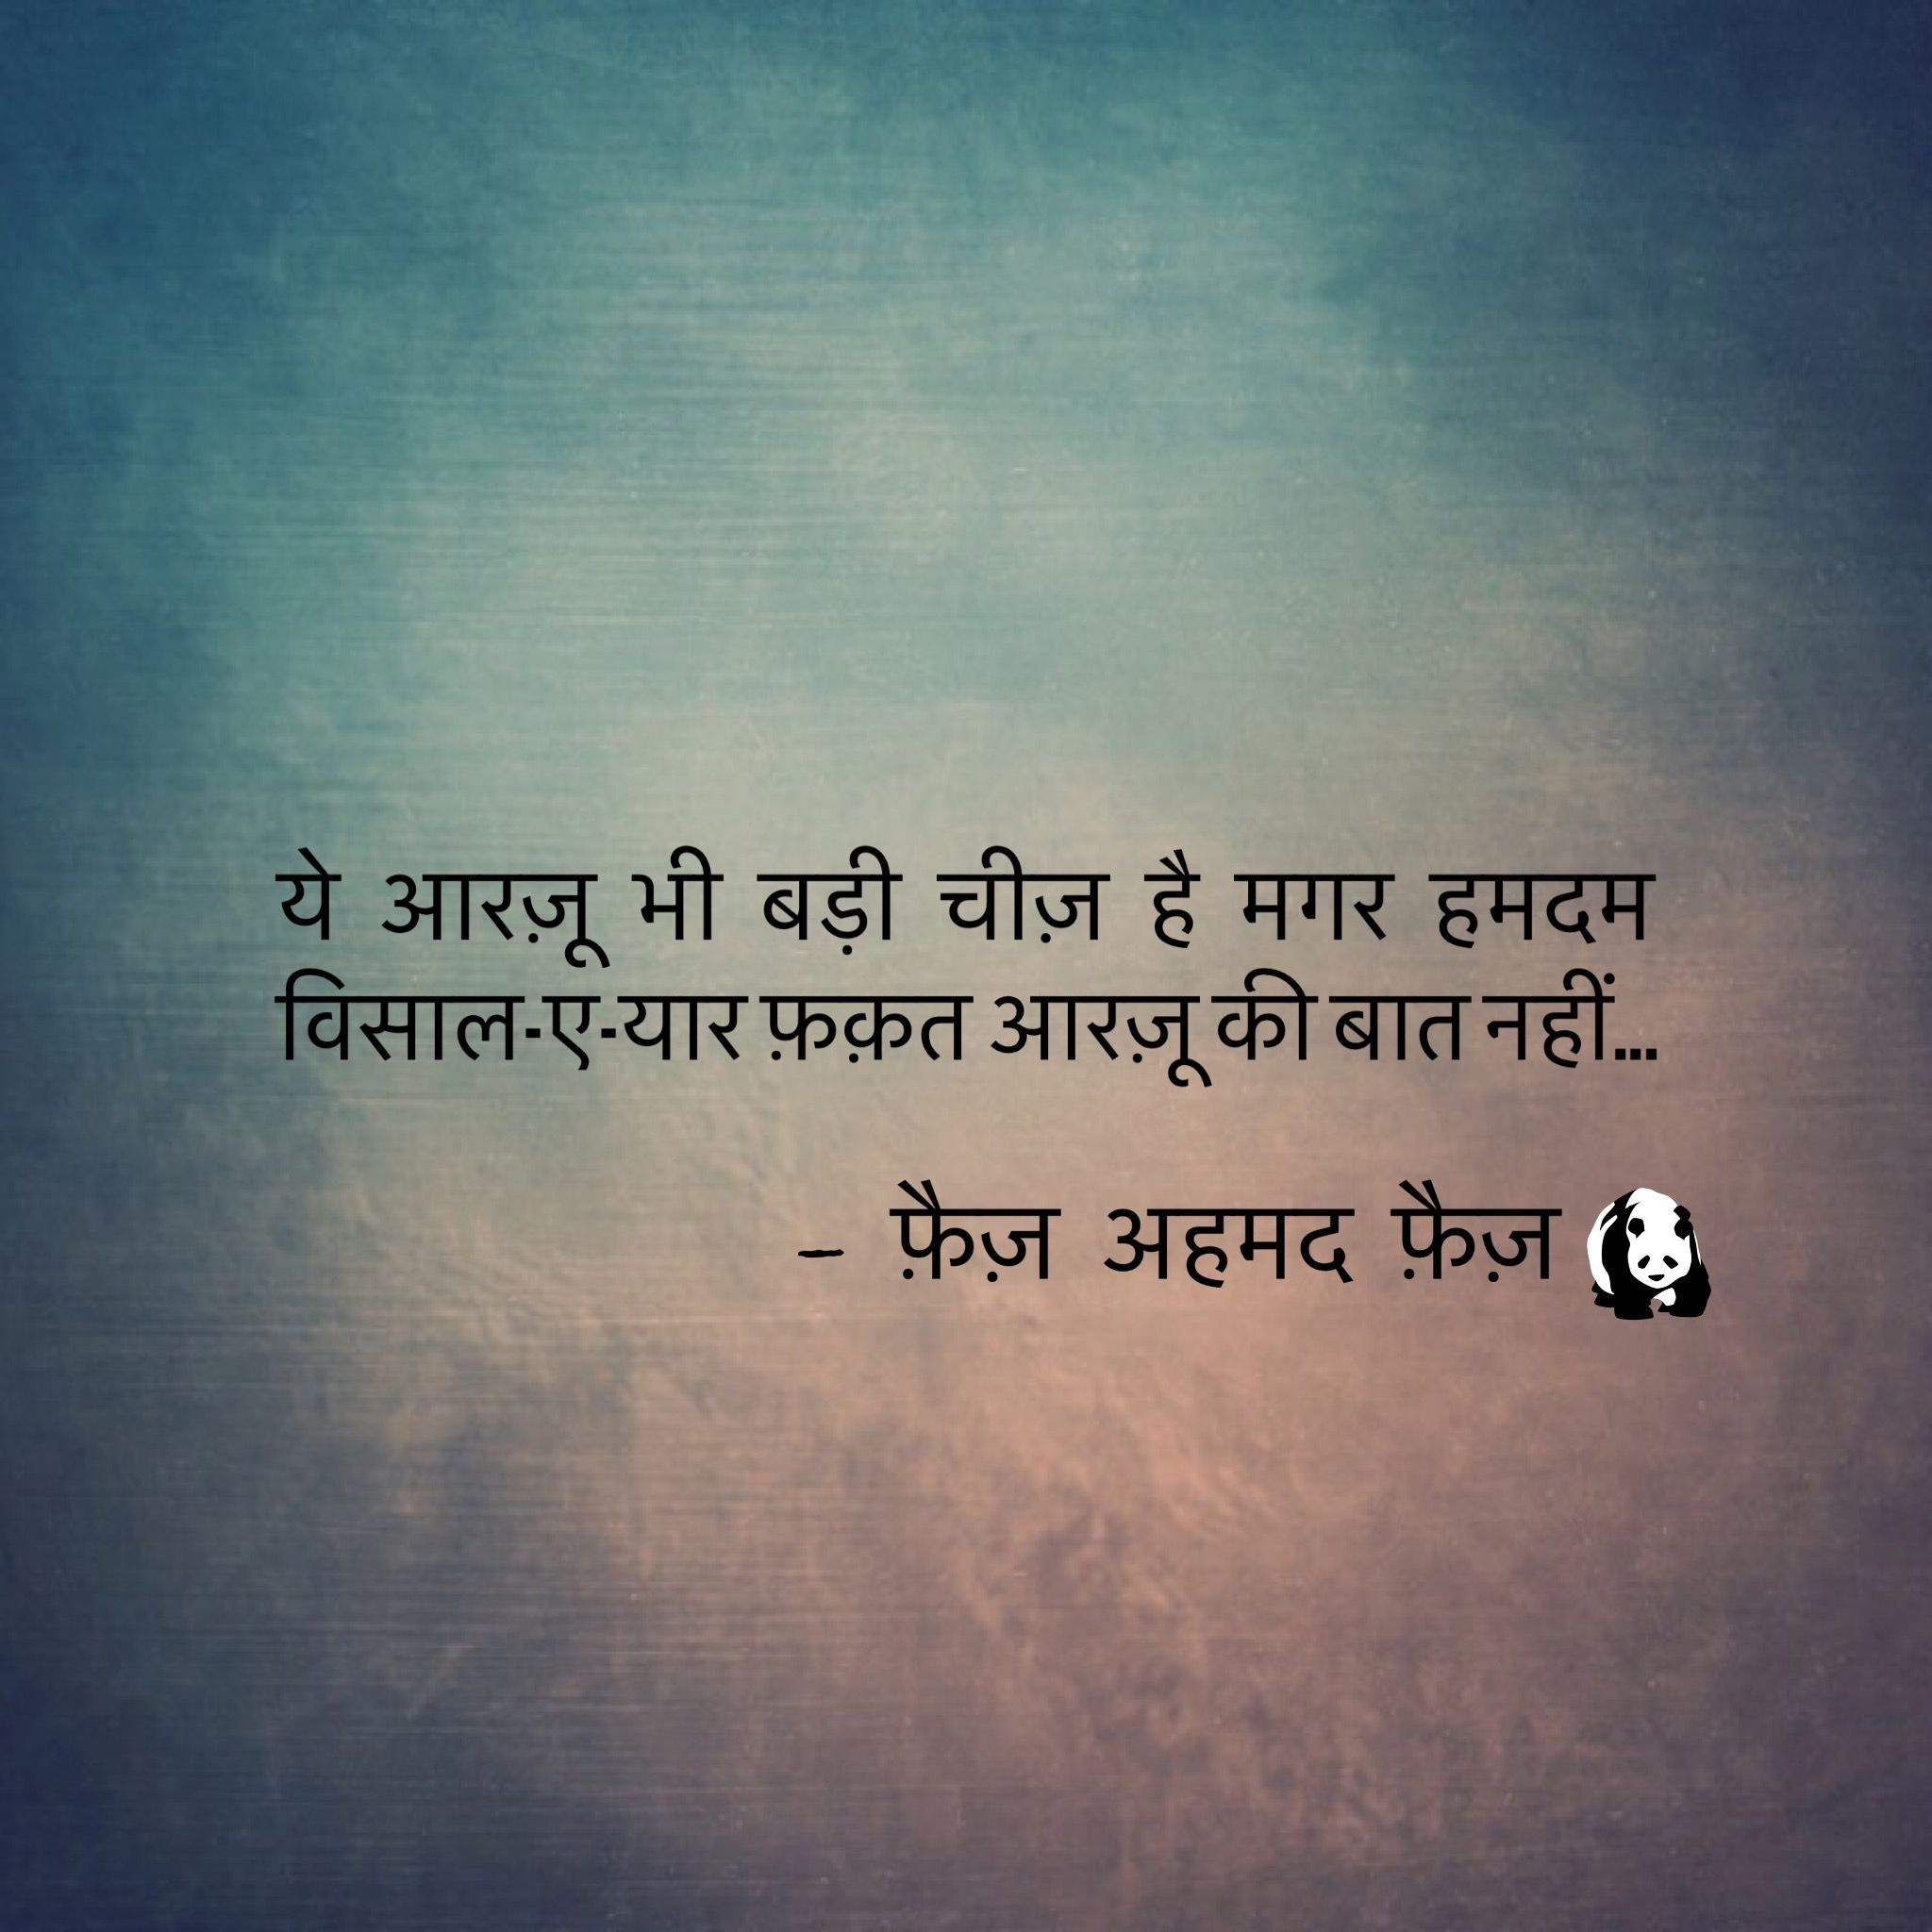 Infinity Love Quotes Pinmeri Awaargi On Love Shayri  Pinterest  Hindi Quotes And